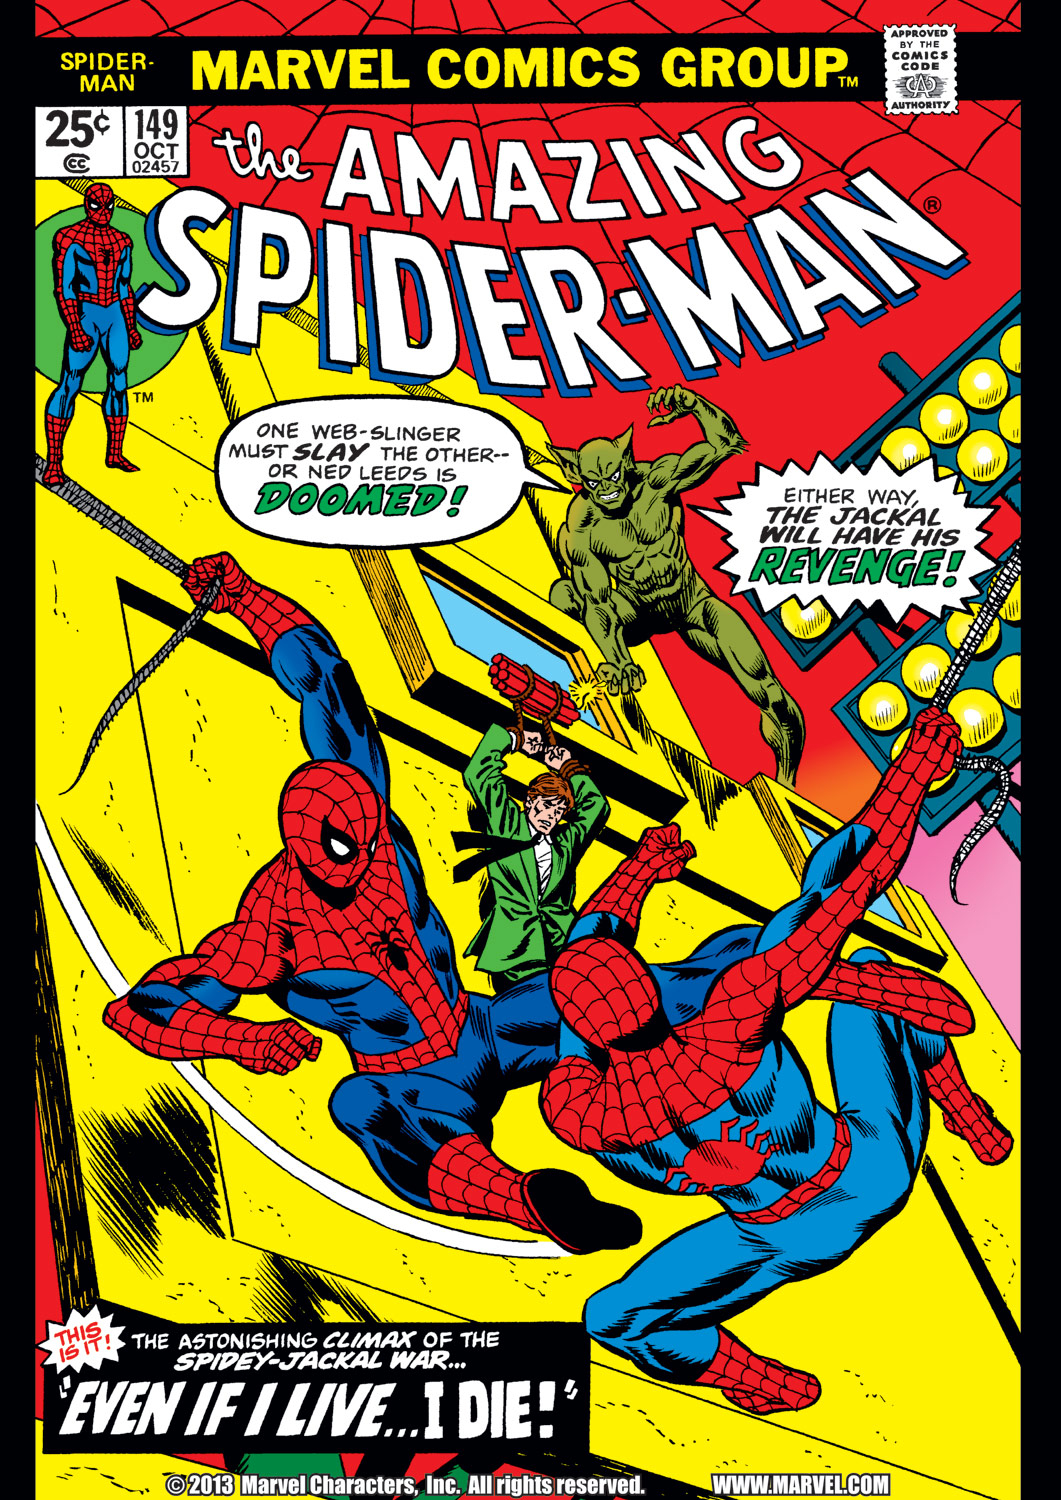 The Amazing Spider-Man (1963) 149 Page 1